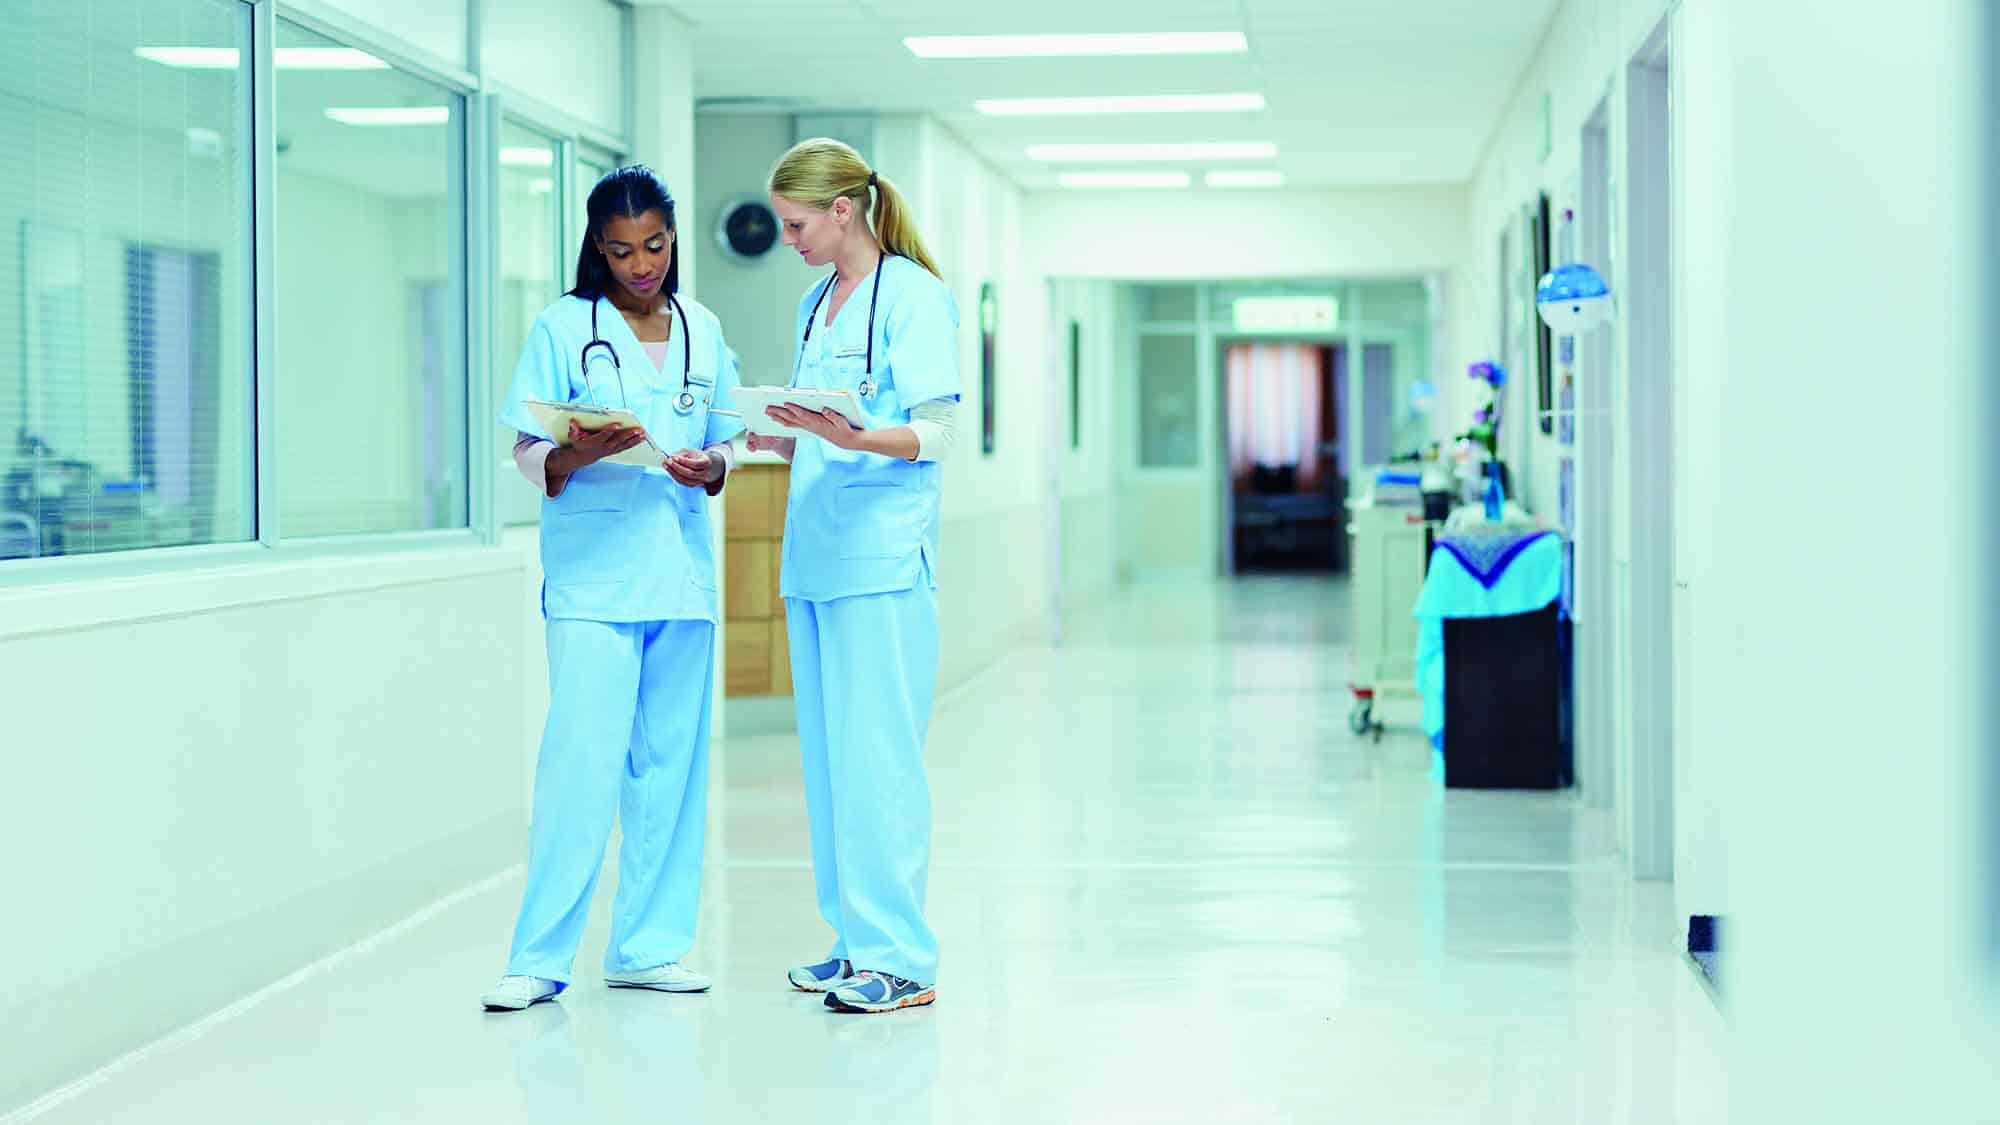 Nurses discussing medical documents in hospital